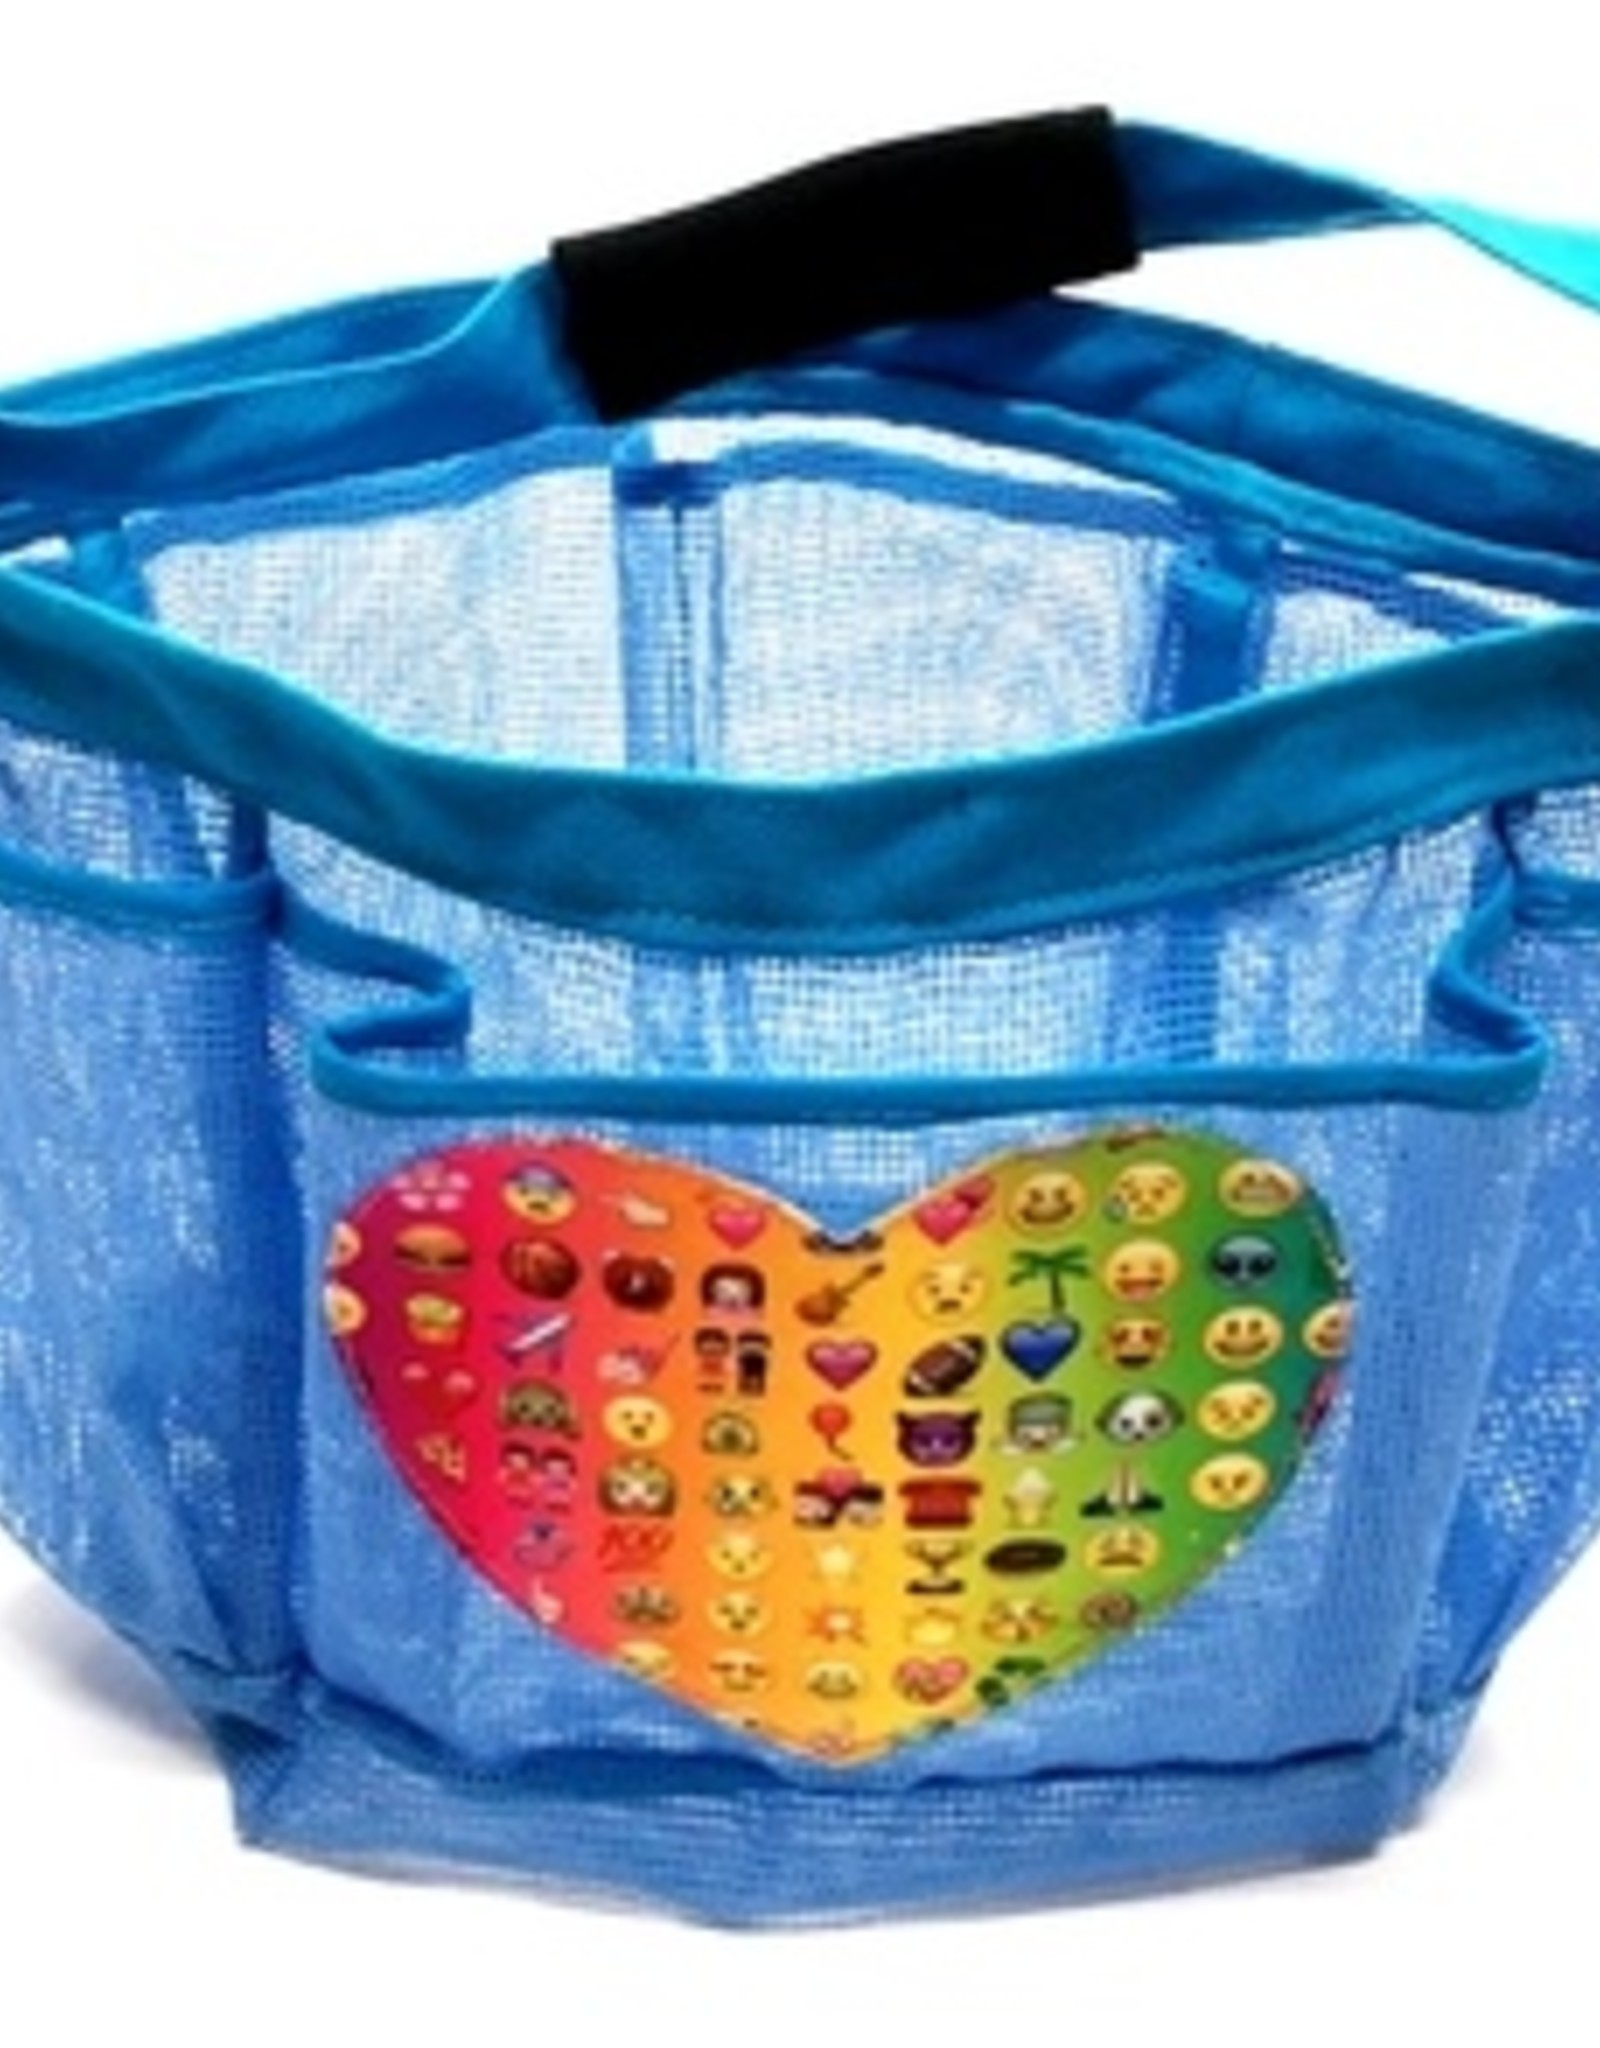 Bunk Junk Bunk Junk Multi Emoji Shower Caddy